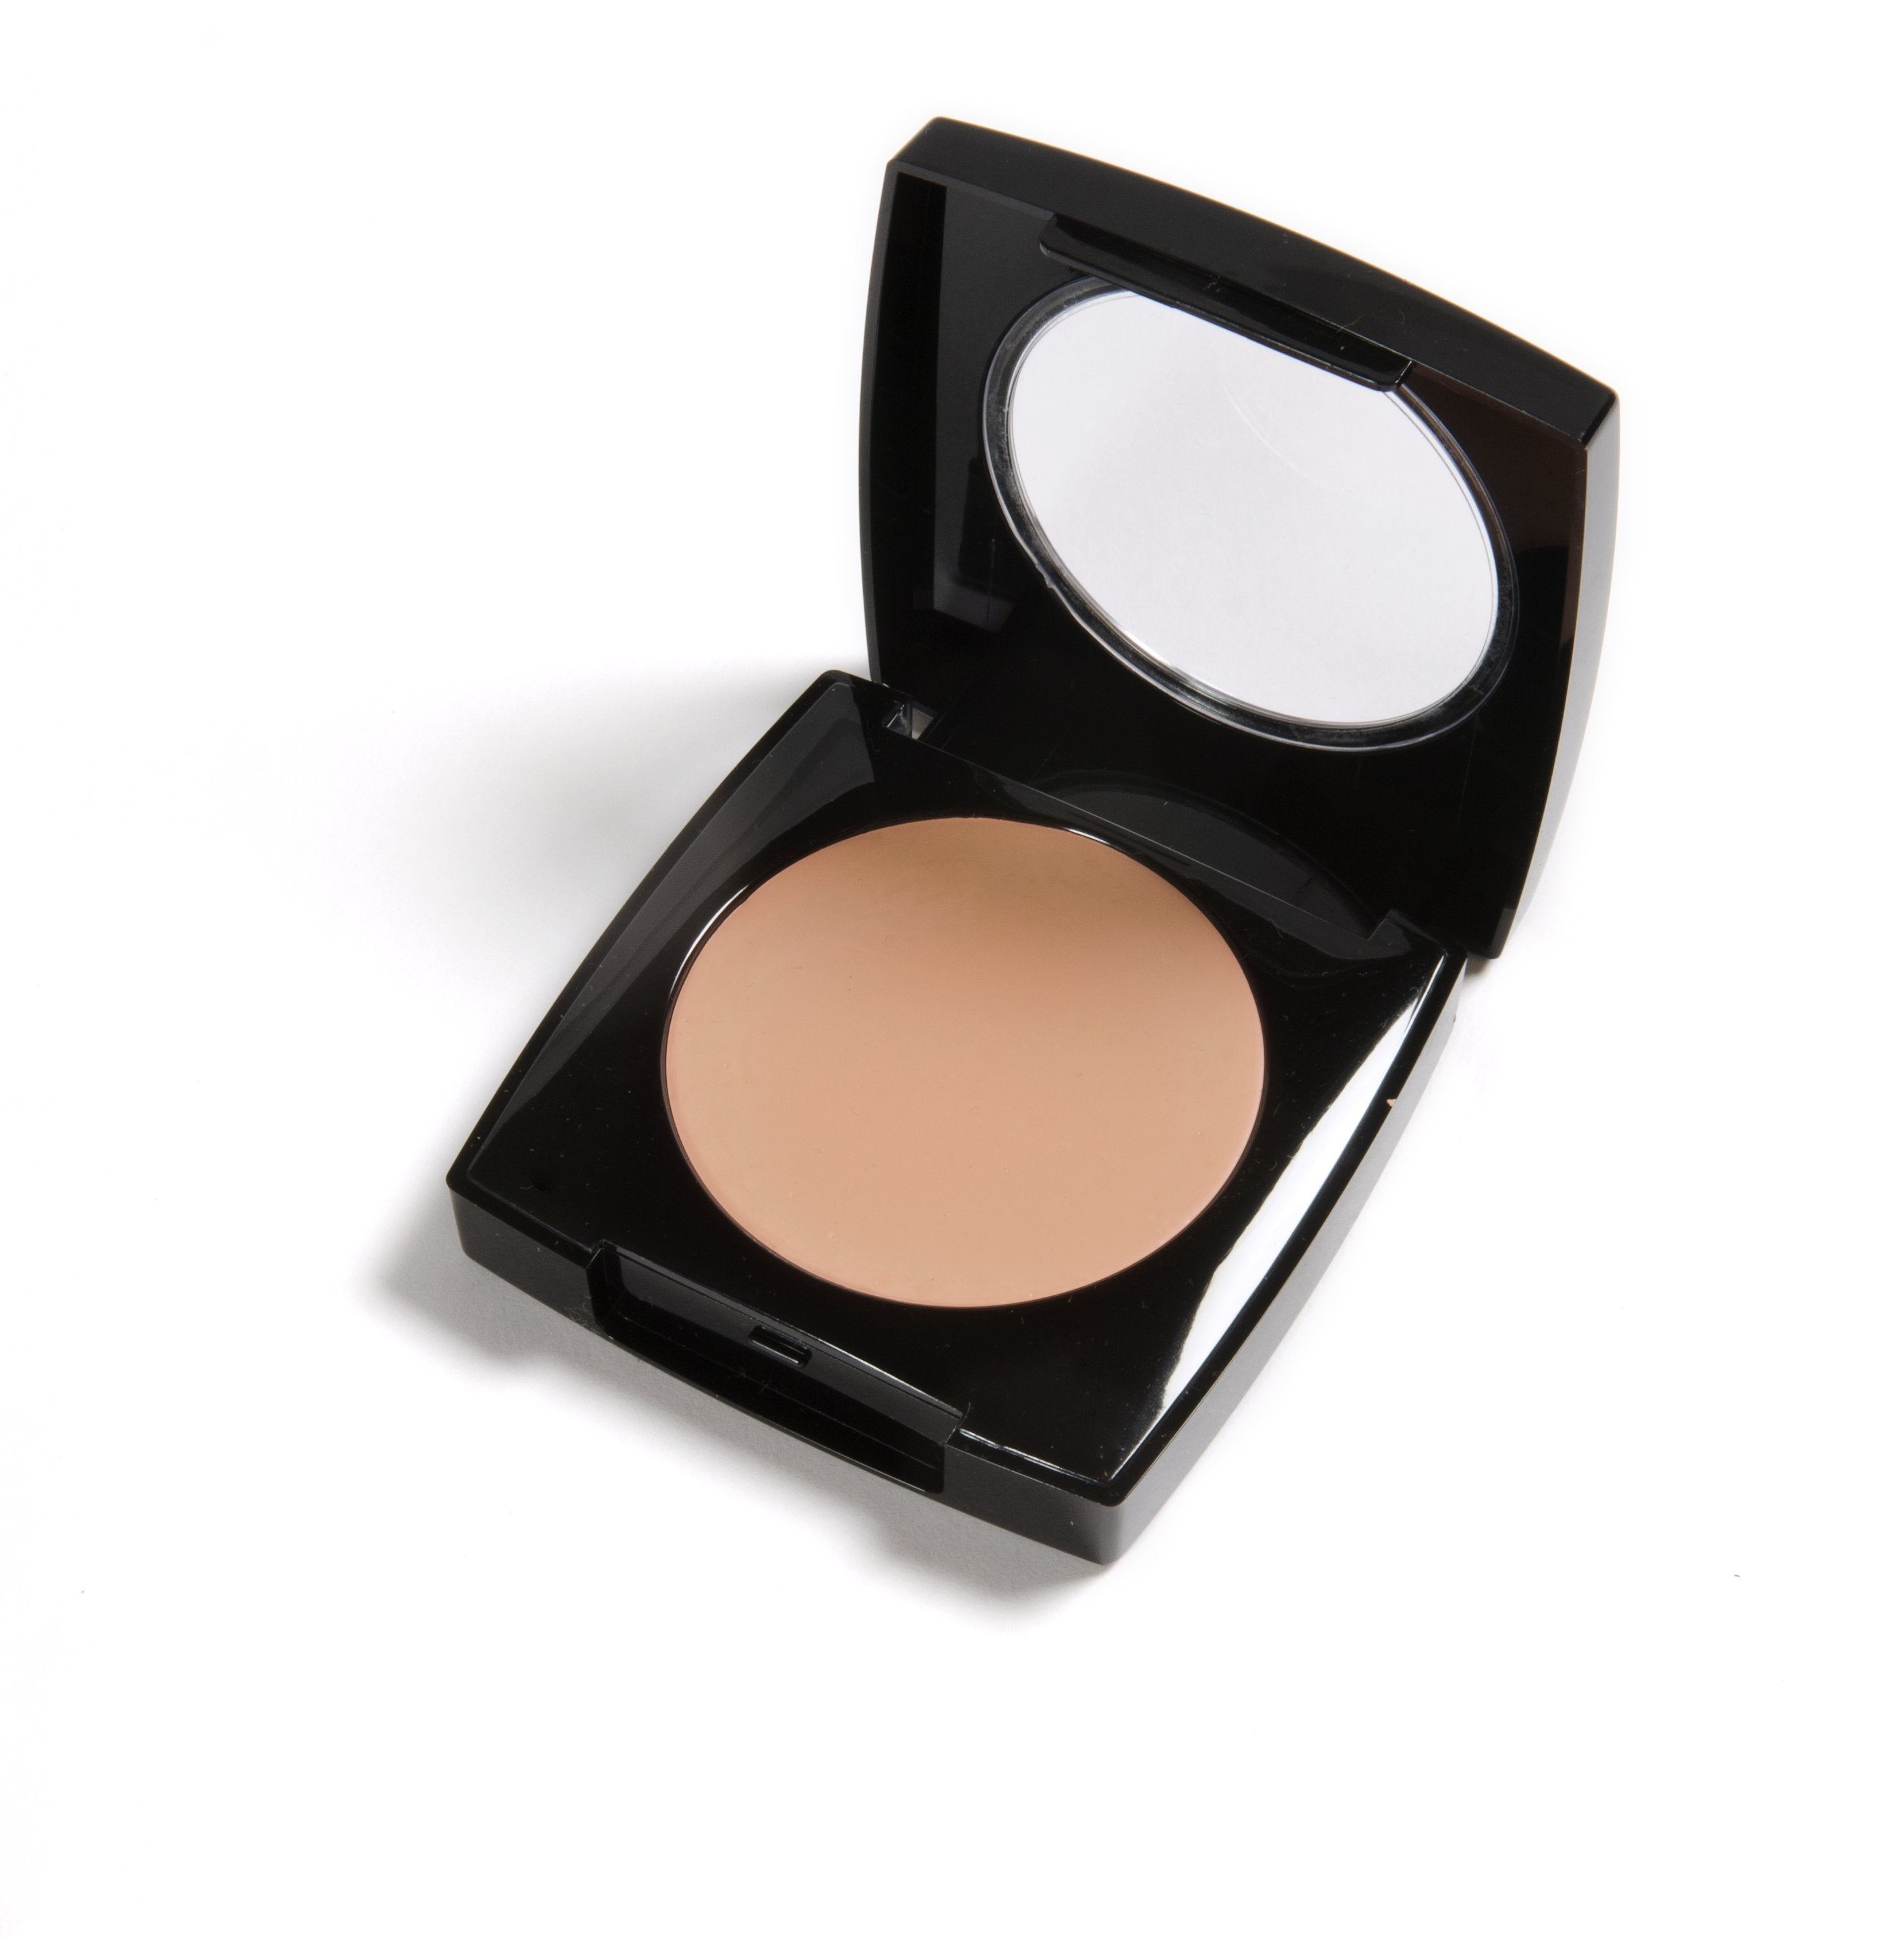 Danyel' - Soft Beige Foundation - Our Best Selling Shade!